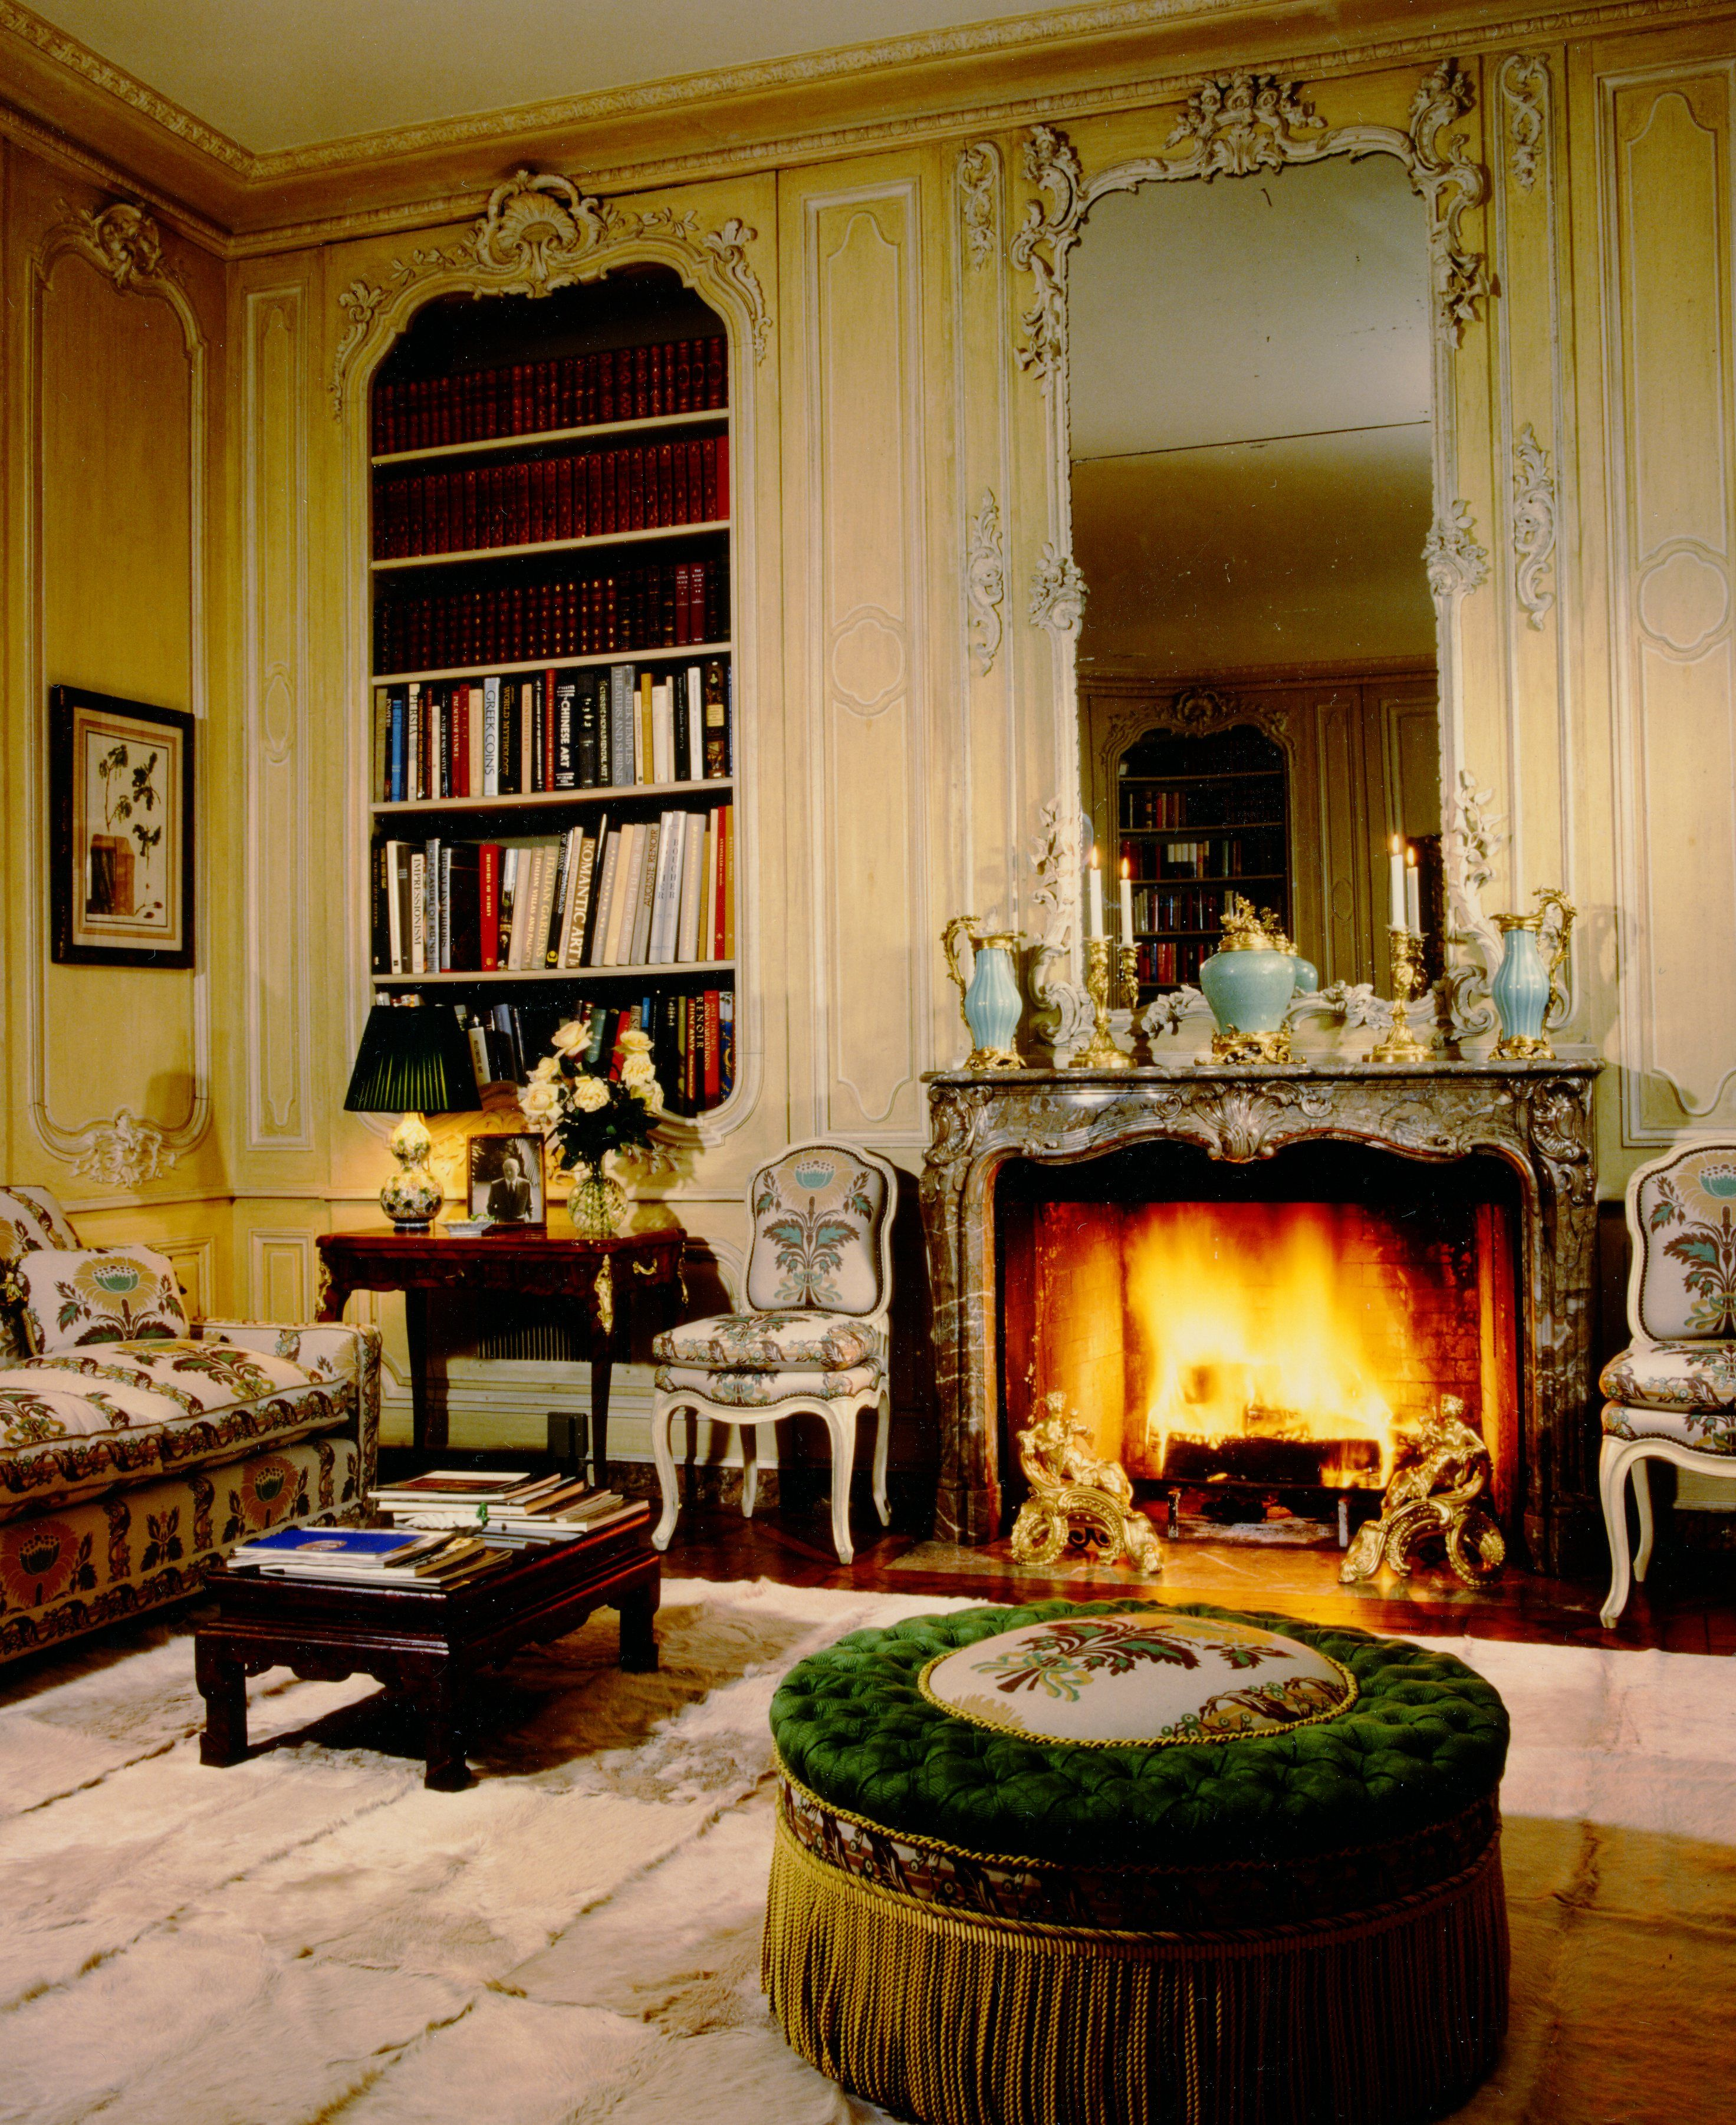 One of the prettiest rooms in one of the most beautiful homes ...